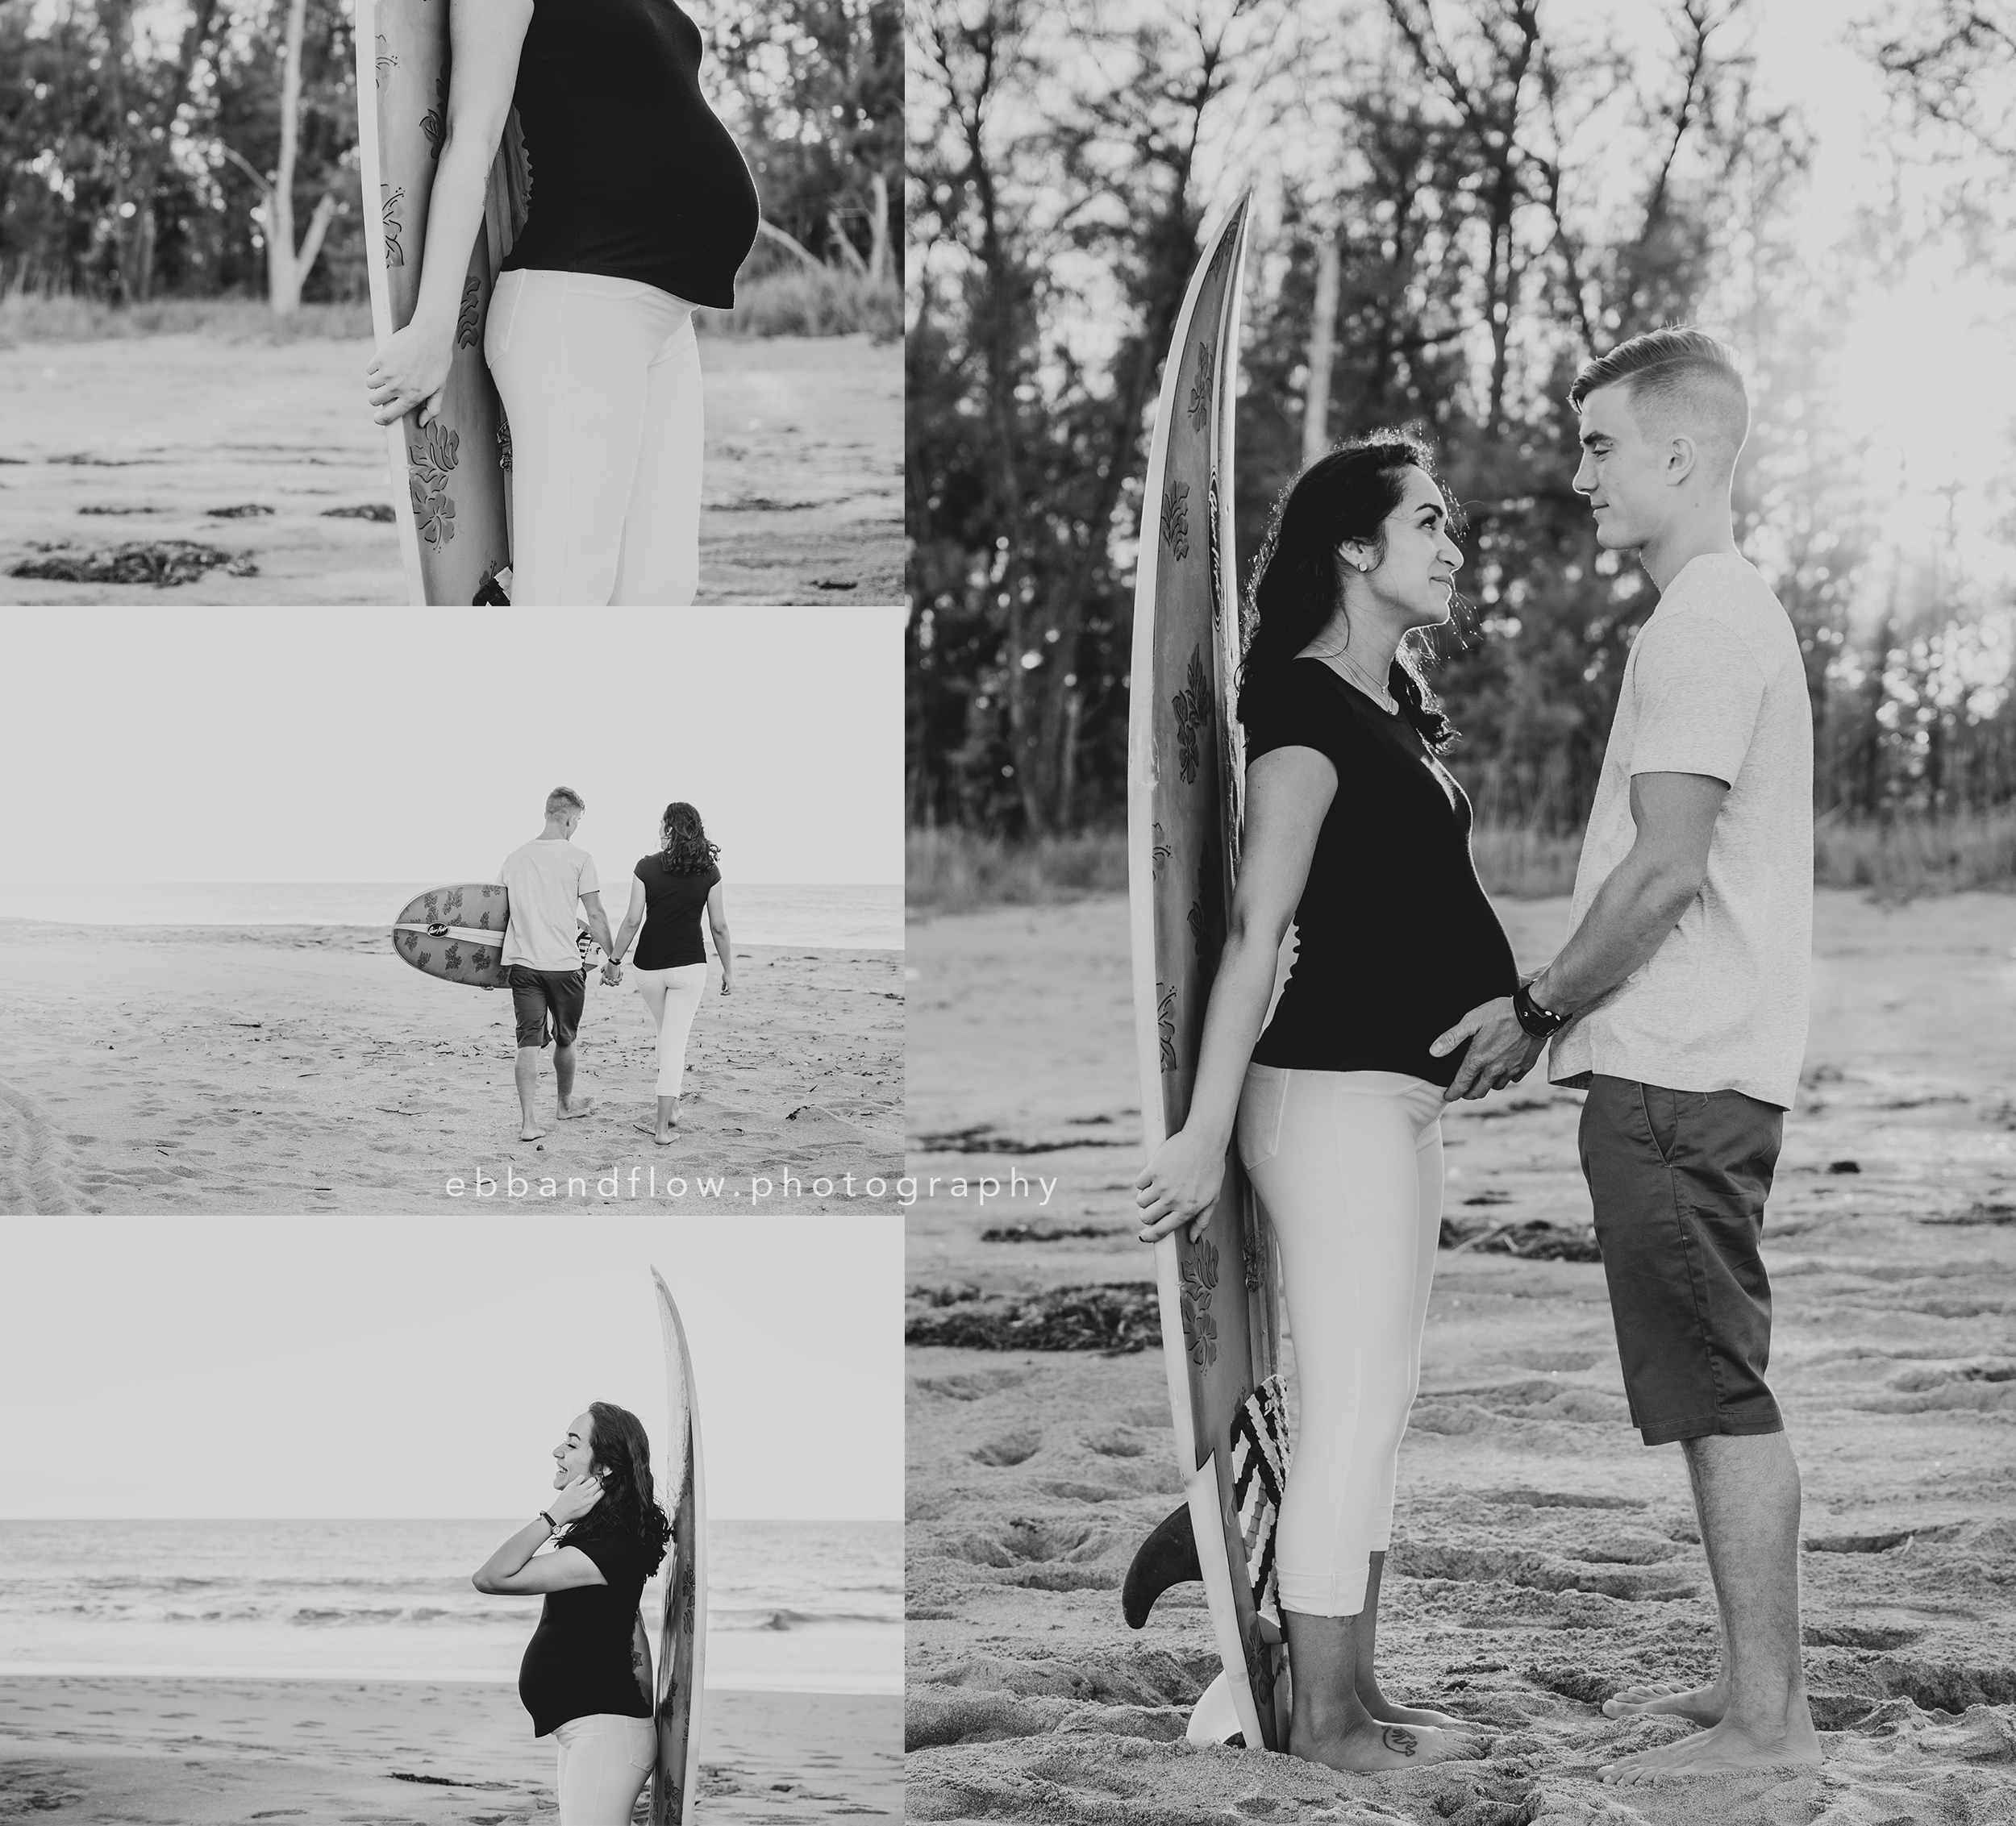 Romantic Beach Maternity Session - Ebb and Flow Photography - Treasure Coast maternity photographer